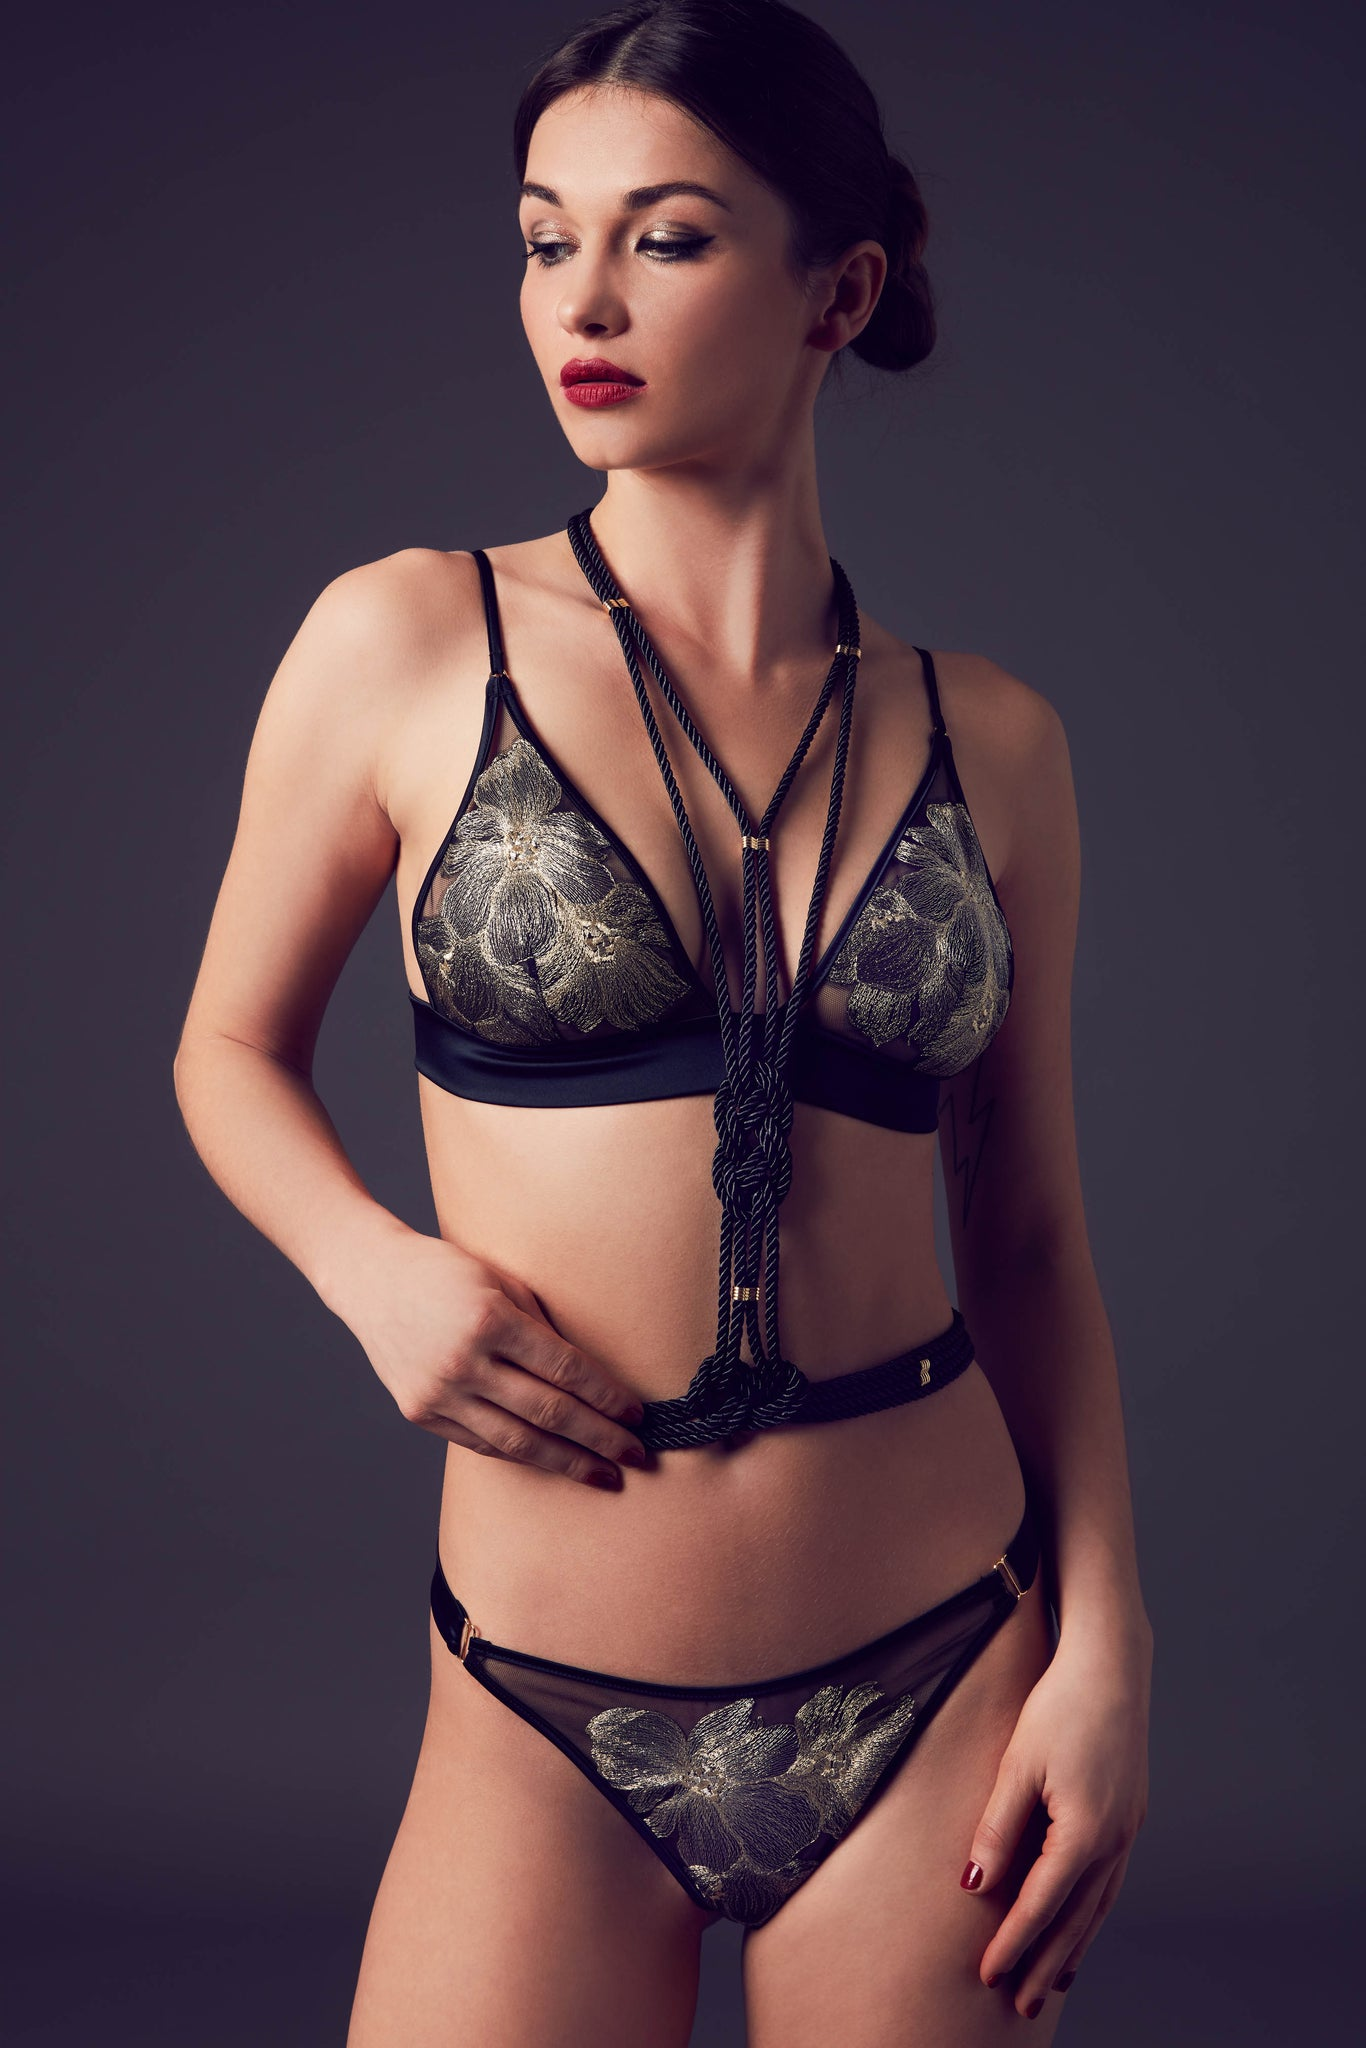 Ayako embroidered designer lingerie with luxury bondage rope body harness